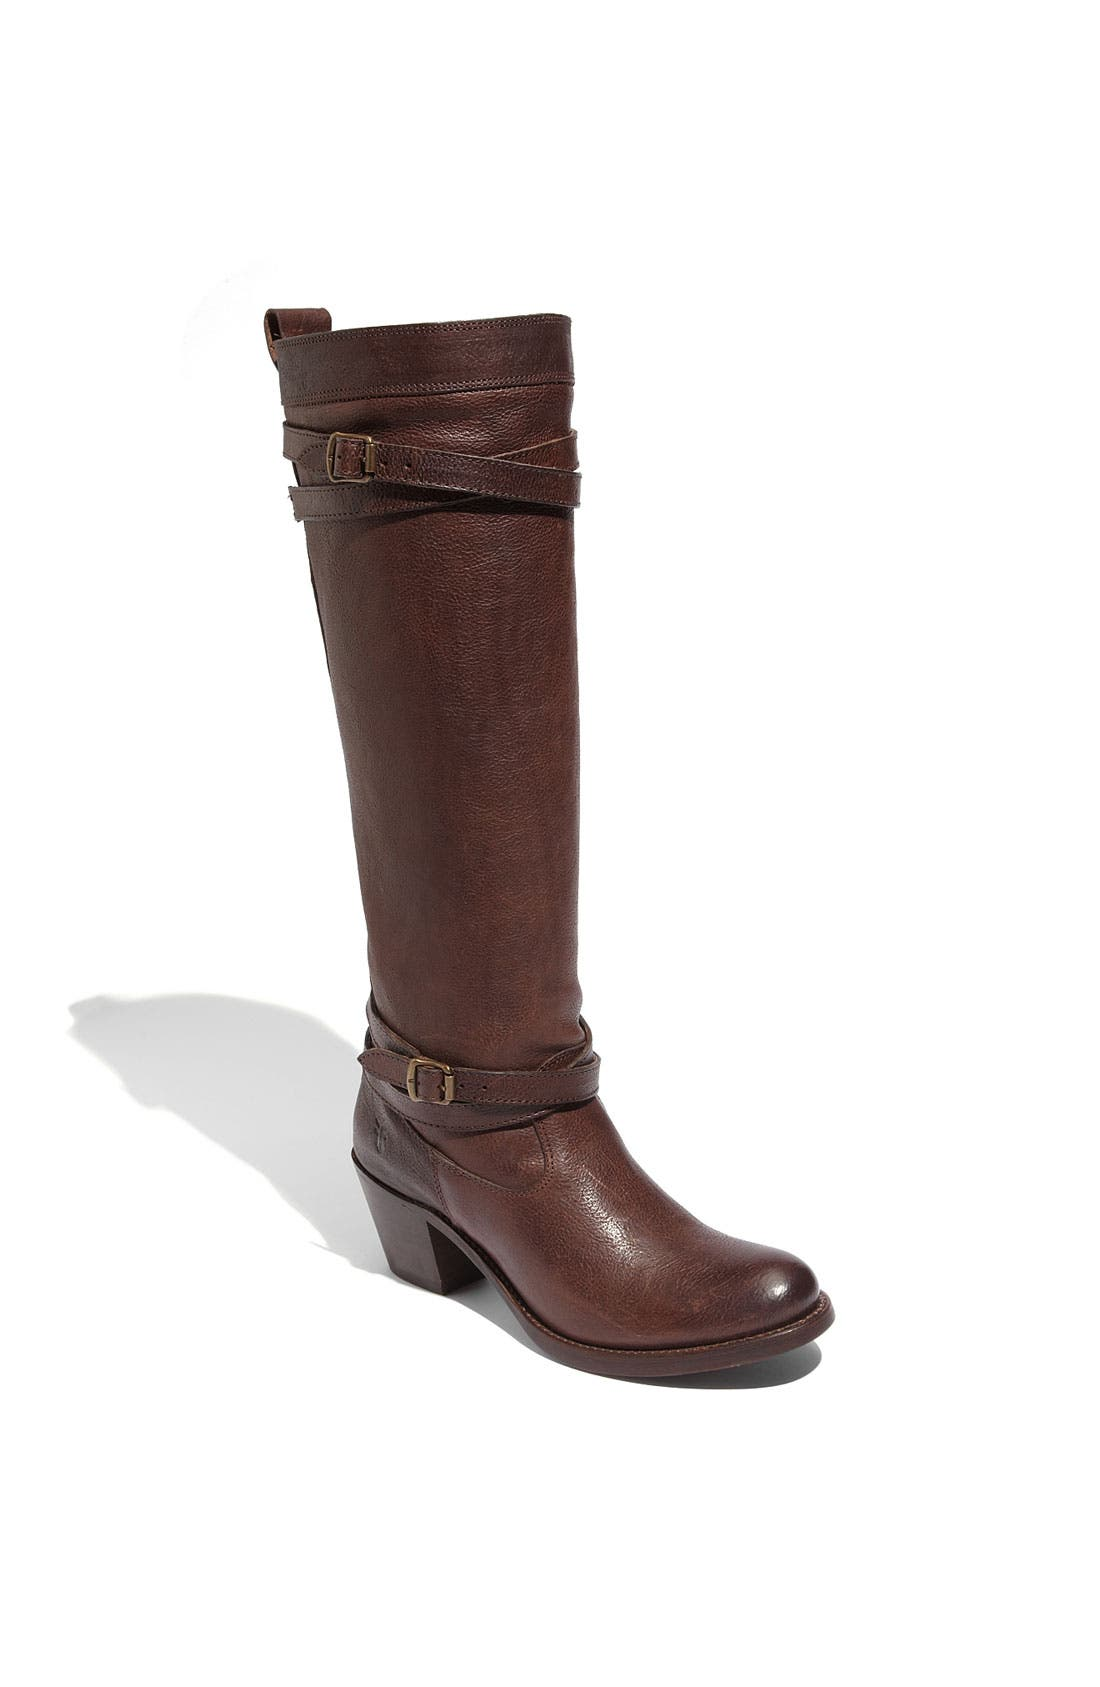 Main Image - Frye 'Jane Strappy' Boot